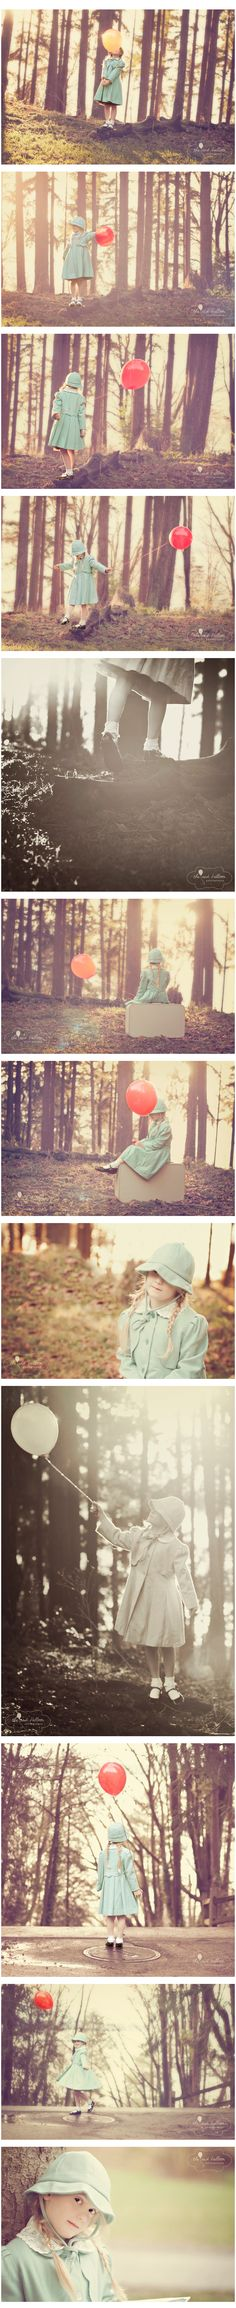 red balloon photography  Similar series of Lia for nursery???